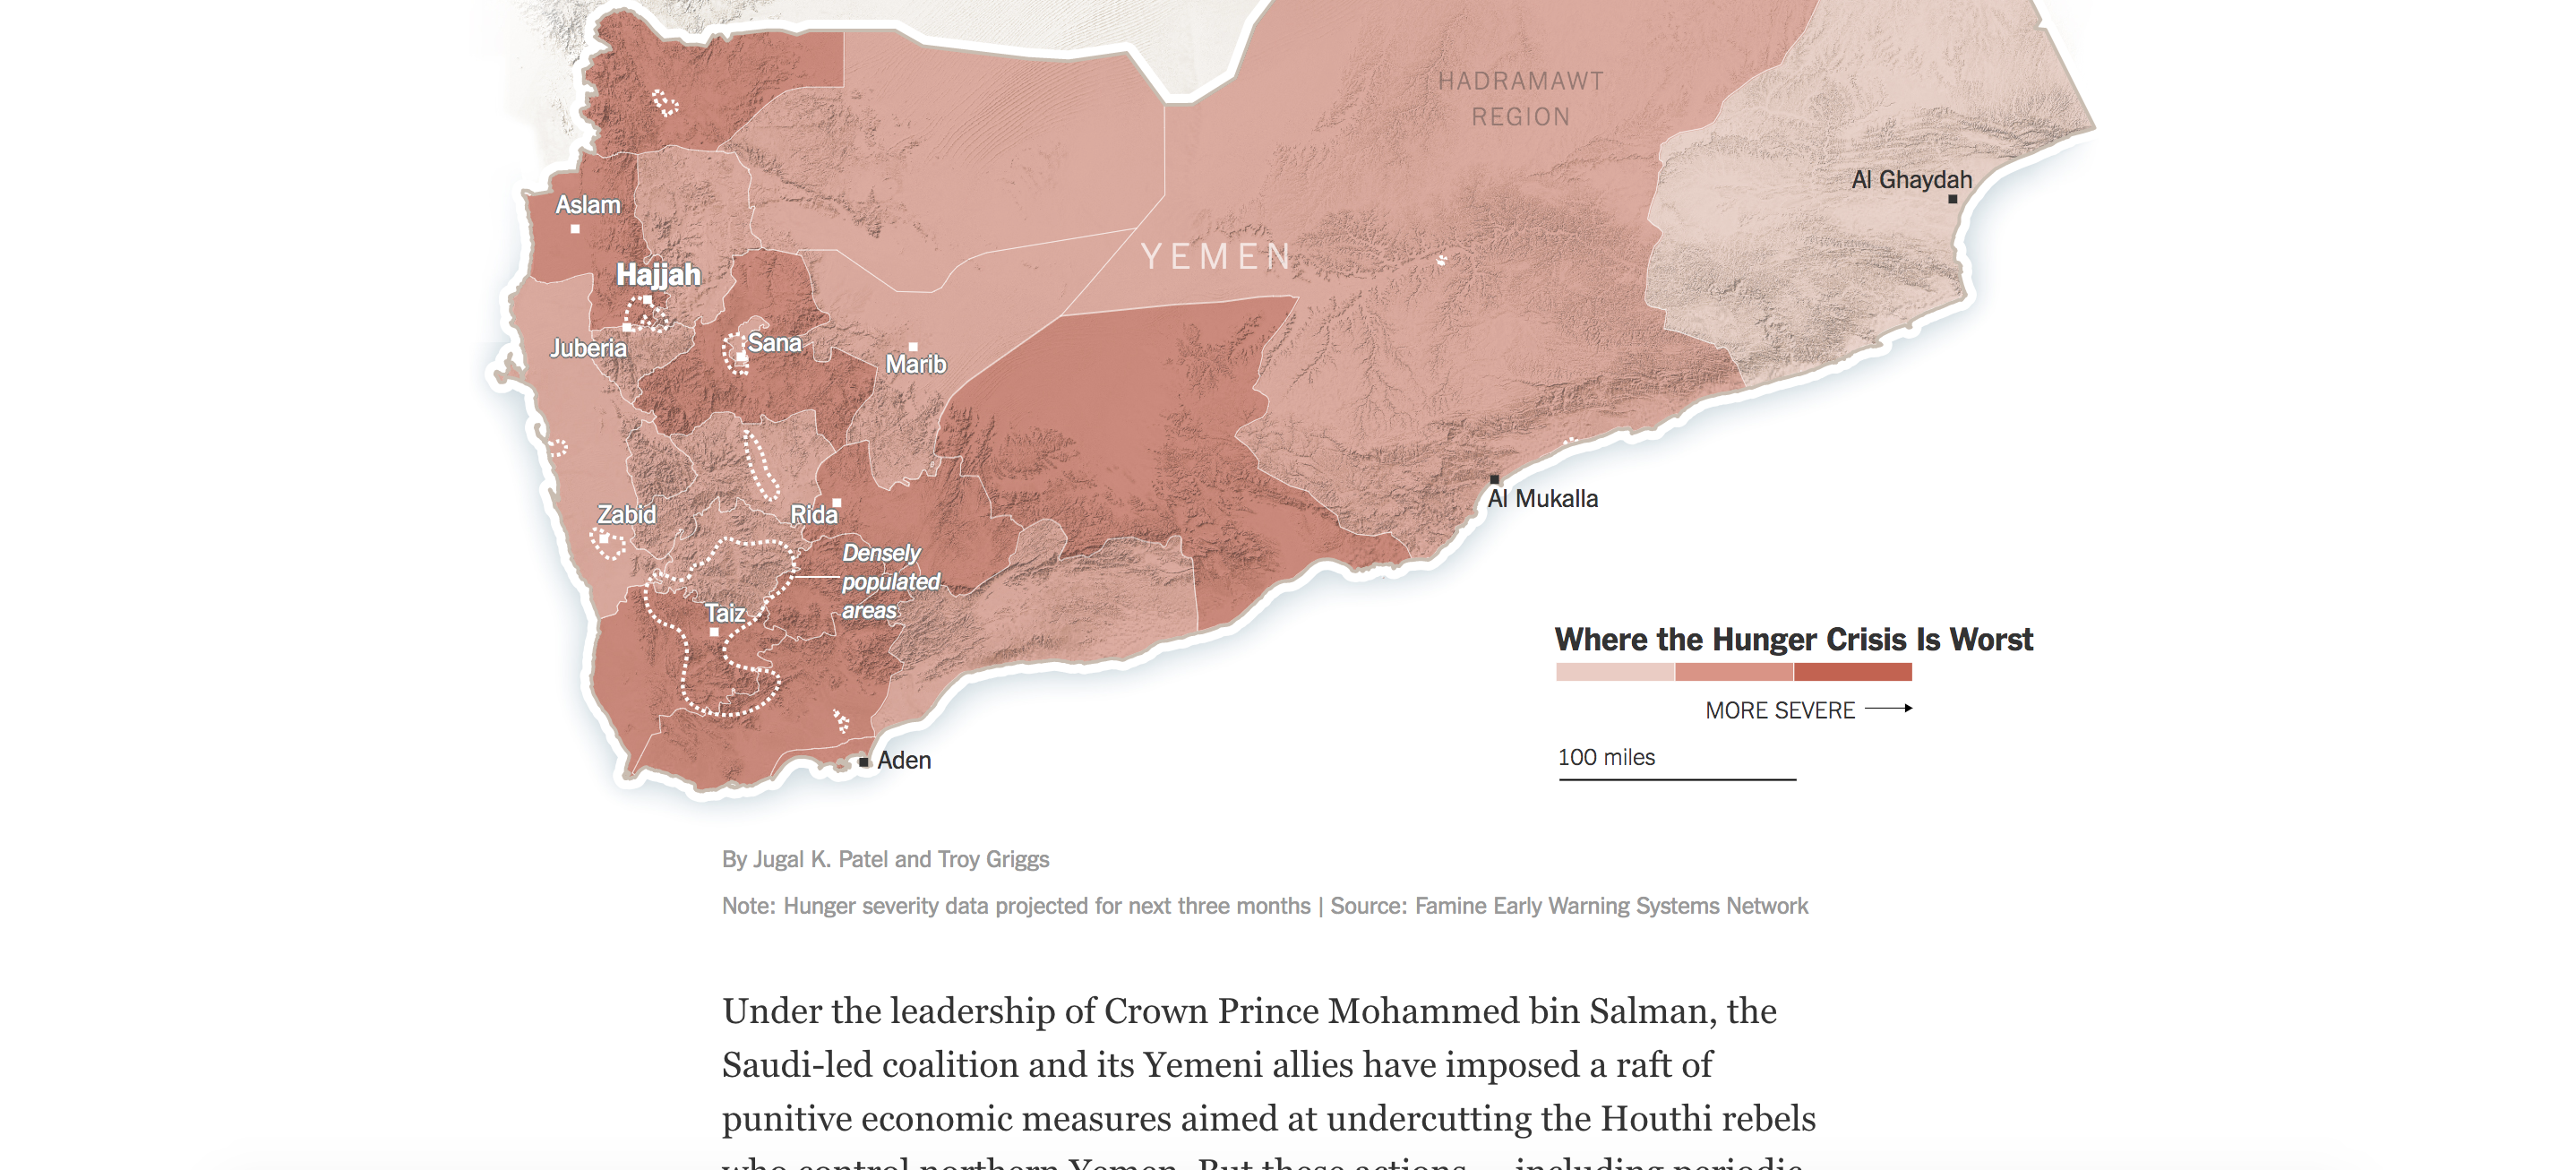 war-yemen-multimedia-coverage-new-york-times